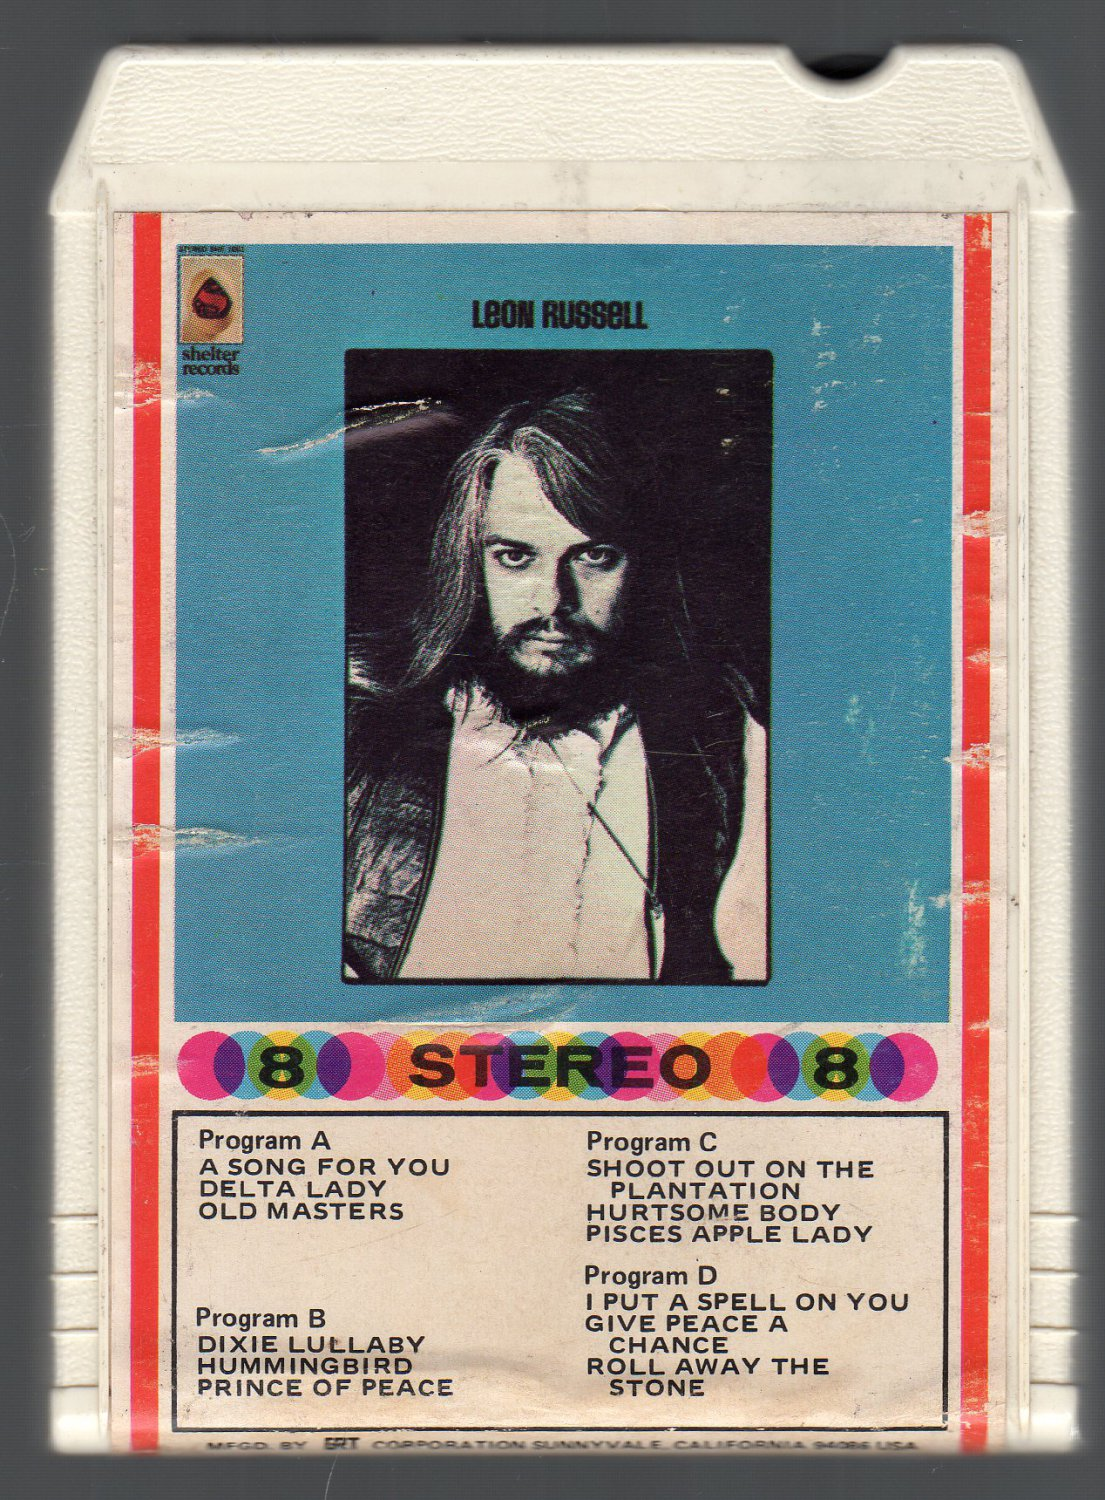 Leon Russell - Leon Russell 1970 Debut GRT SHELTER A1 8-track tape